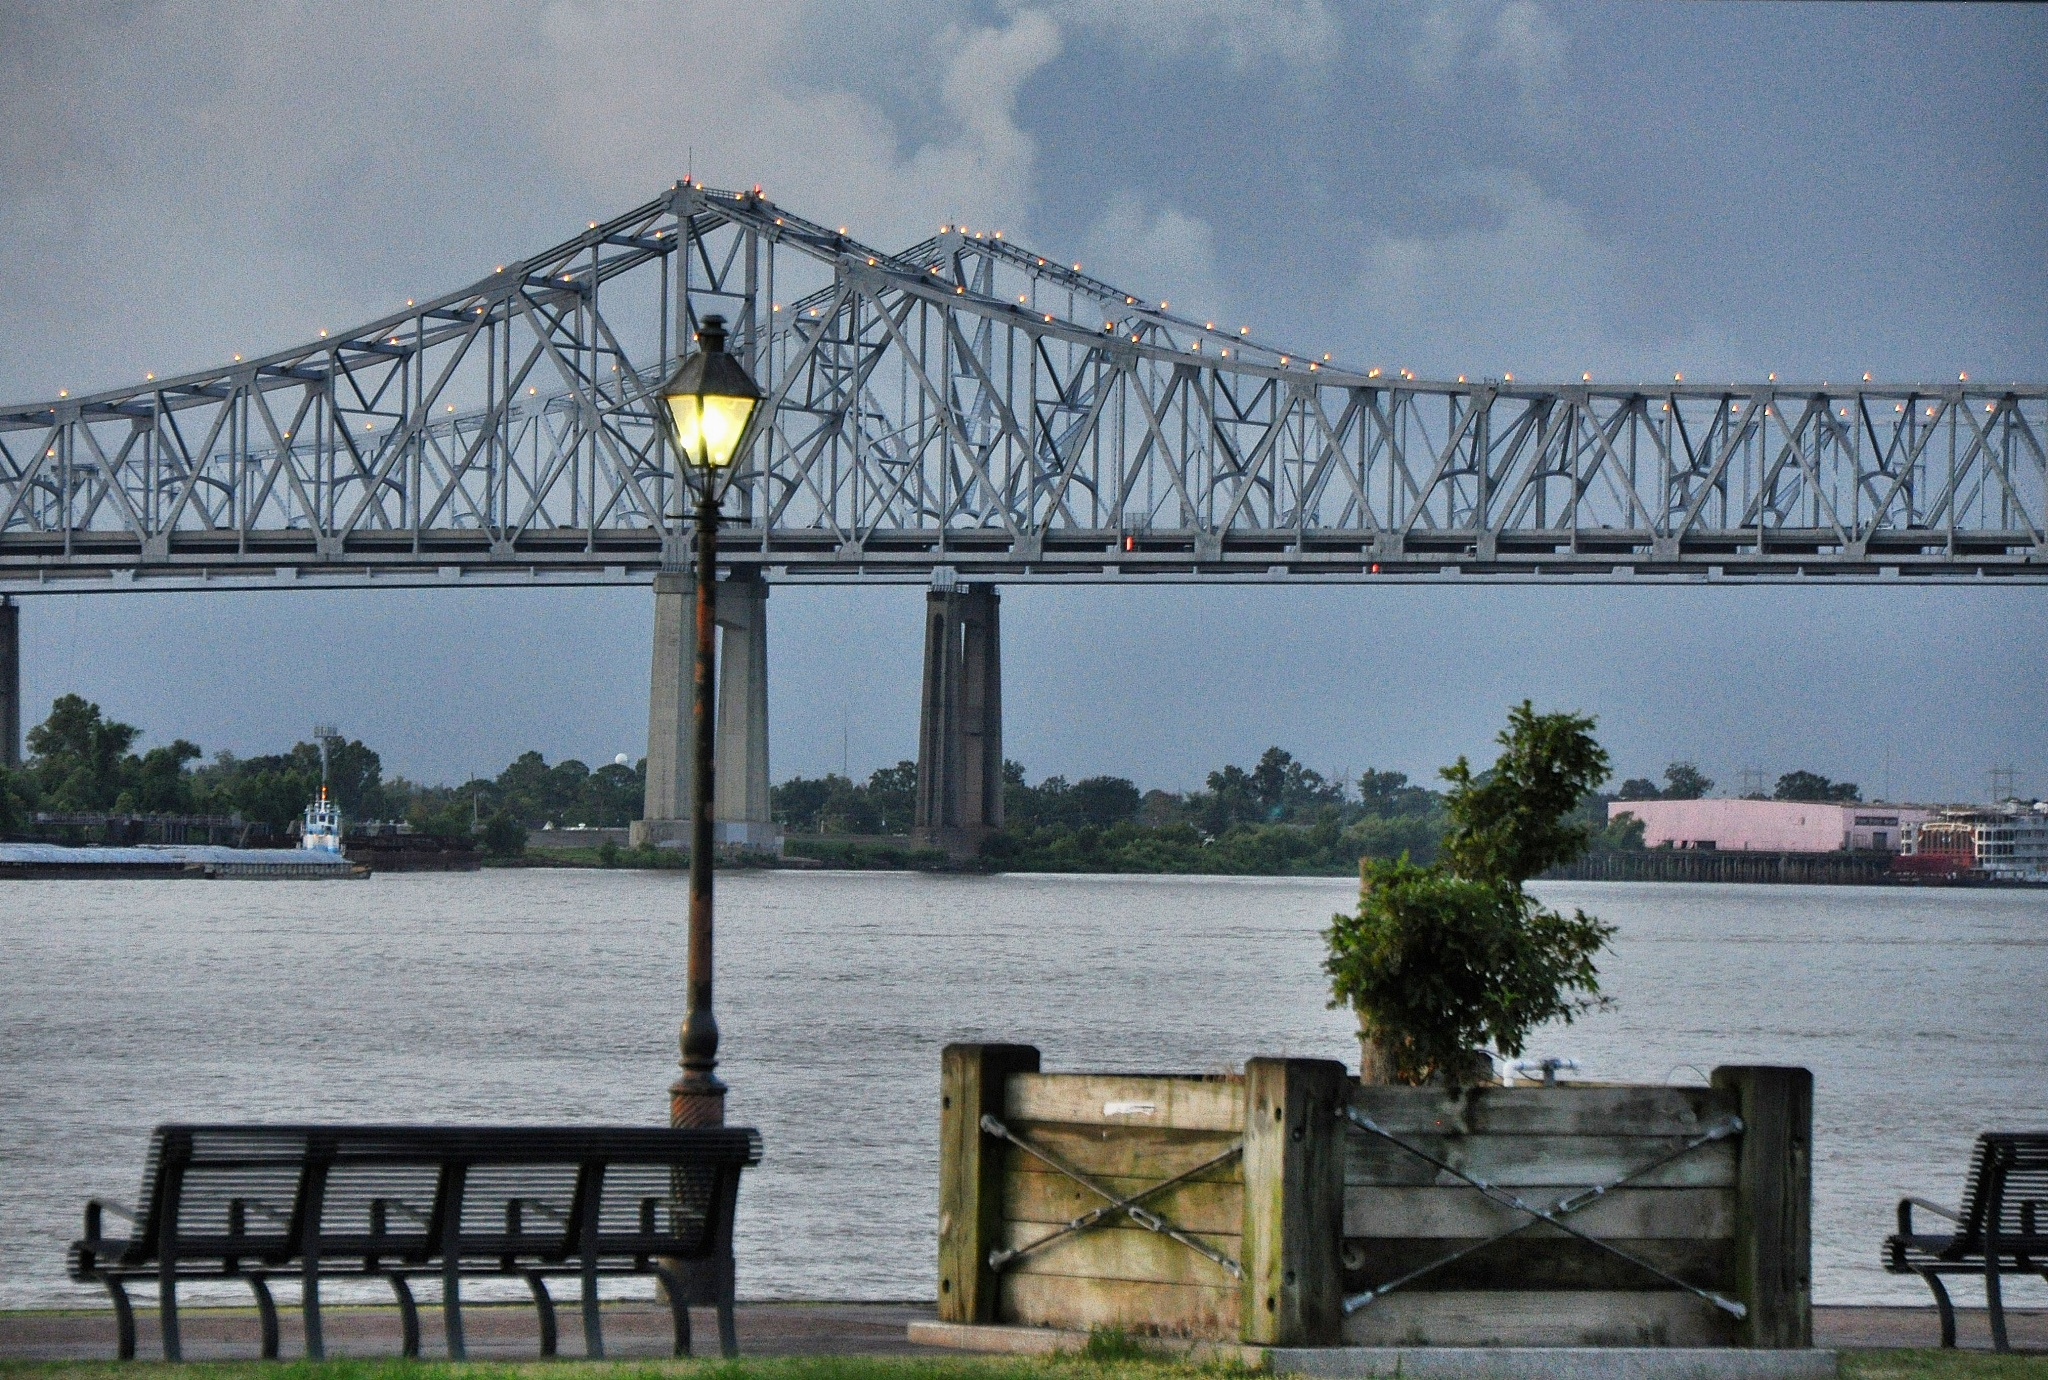 Mississippi River (photo by Josie Young)